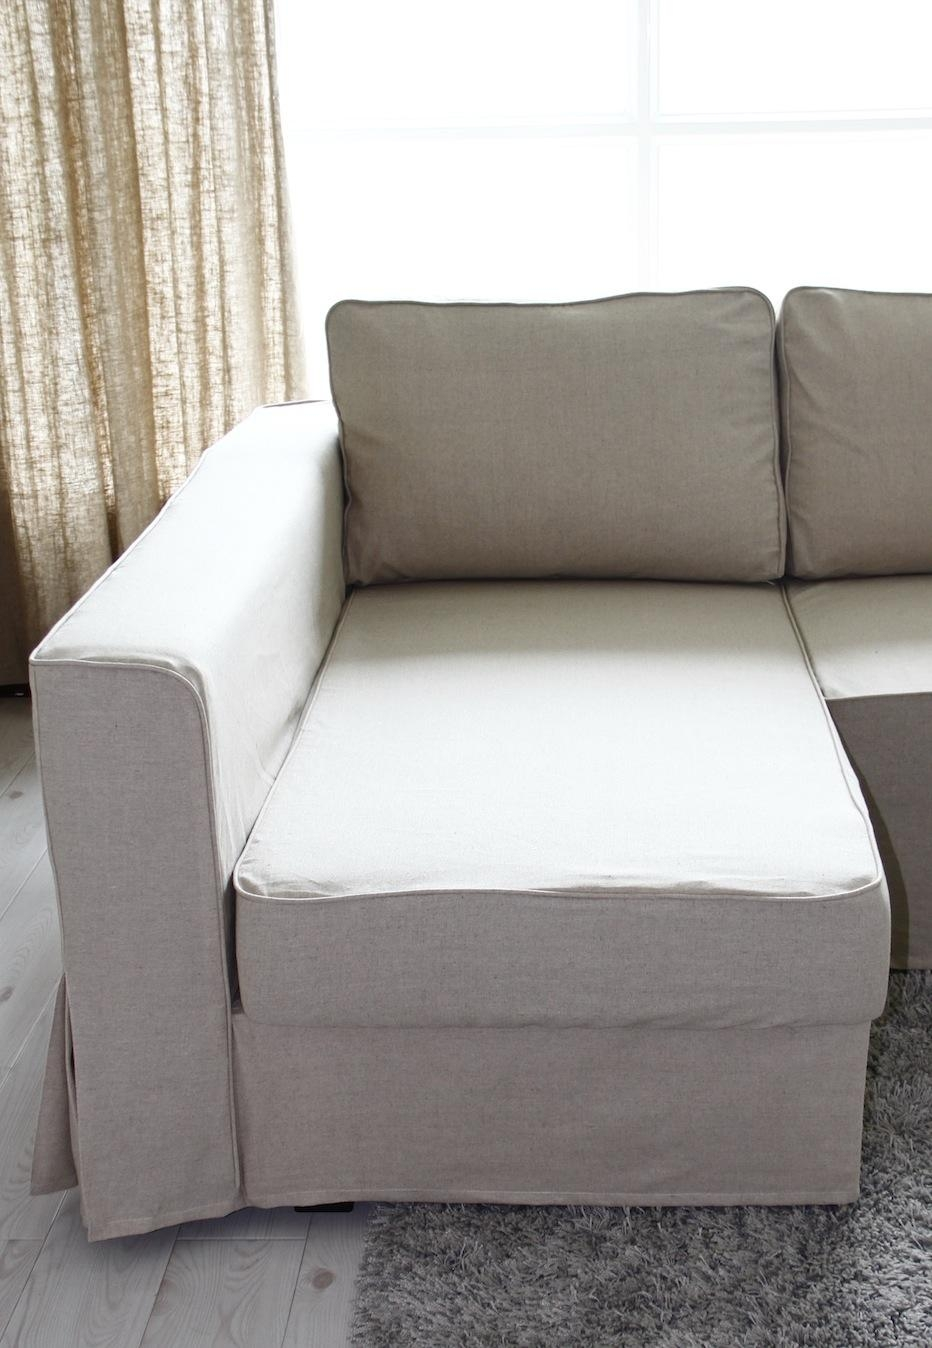 Furniture & Rug: Slipcovers For Sofas With Cushions Separate Inside Armless Sofa Slipcovers (Image 10 of 20)